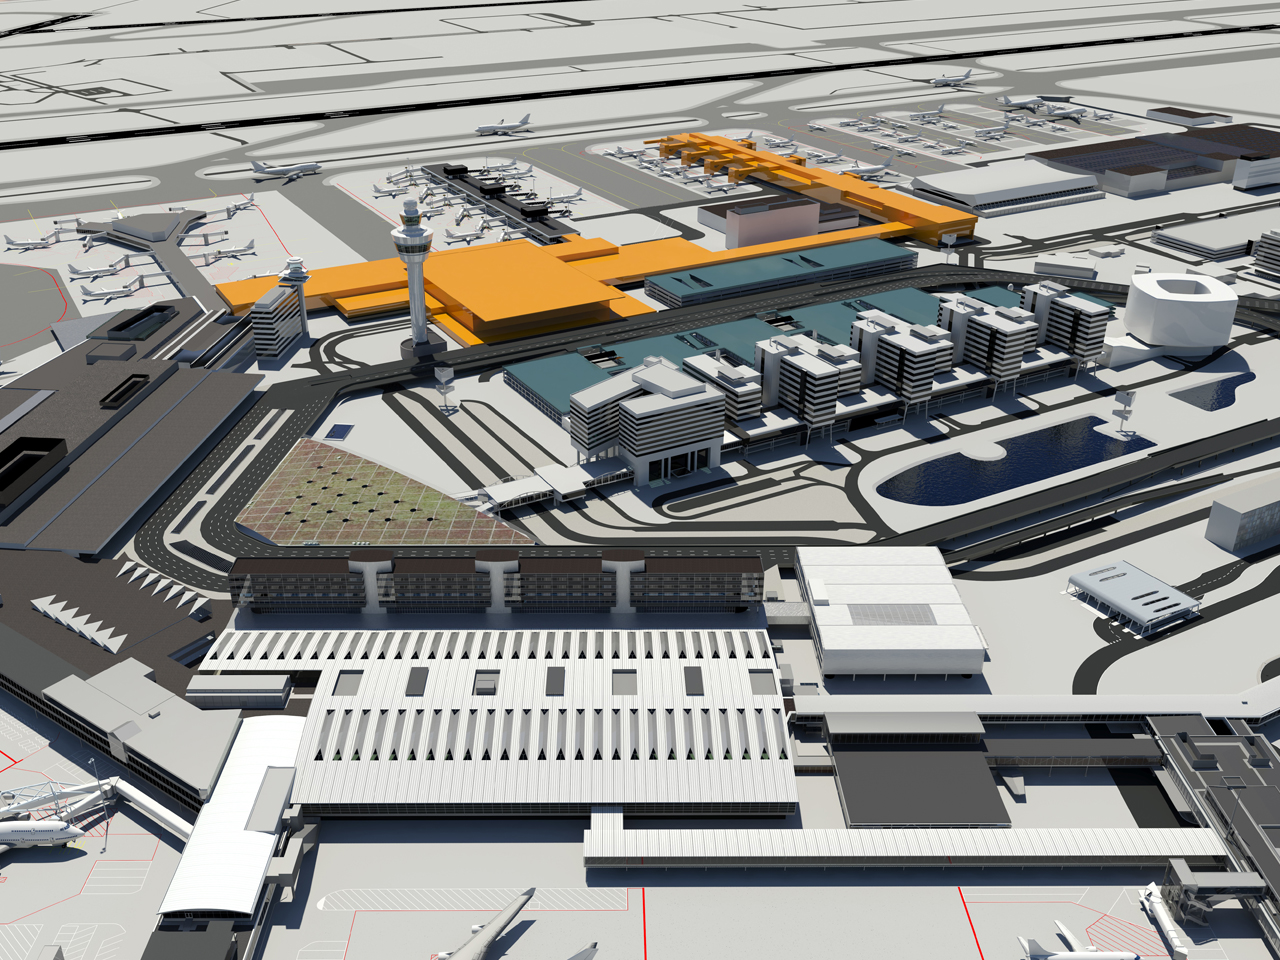 MVRDV, Kohn Pedersen Fox Associates (KPF) and Meinhardt Group in final stage for Amsterdam Airport Schiphol's new terminal